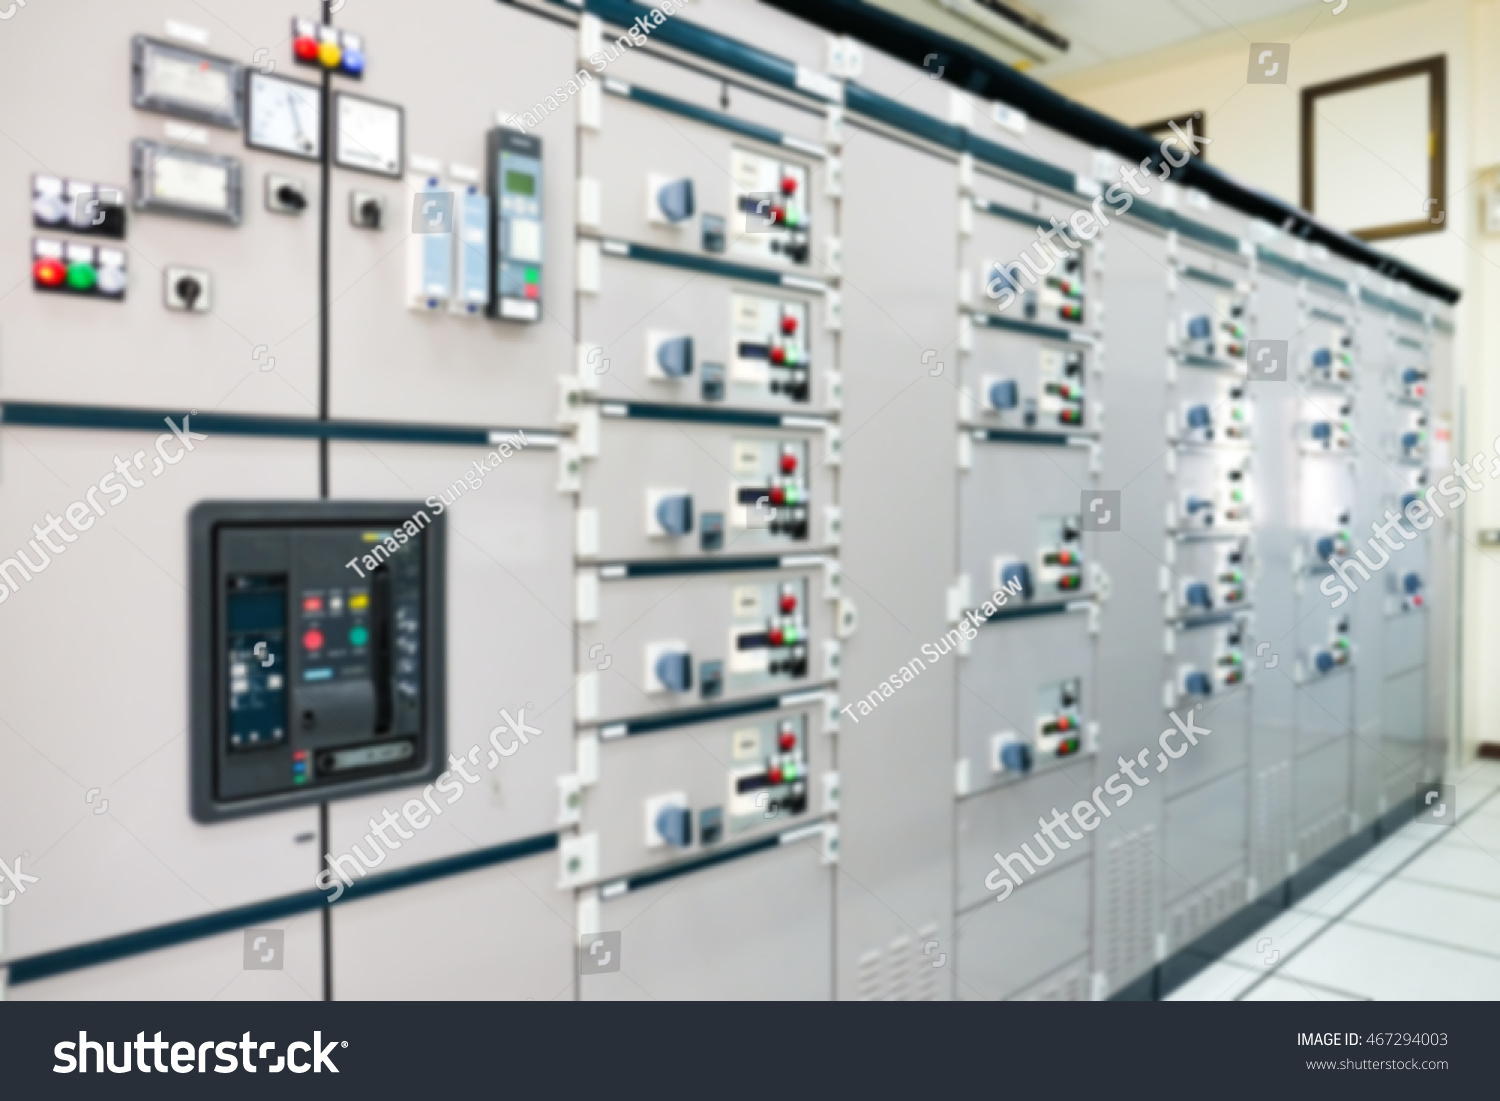 Blurry Electrical Control Panel Central Control Stock Photo (Edit ...